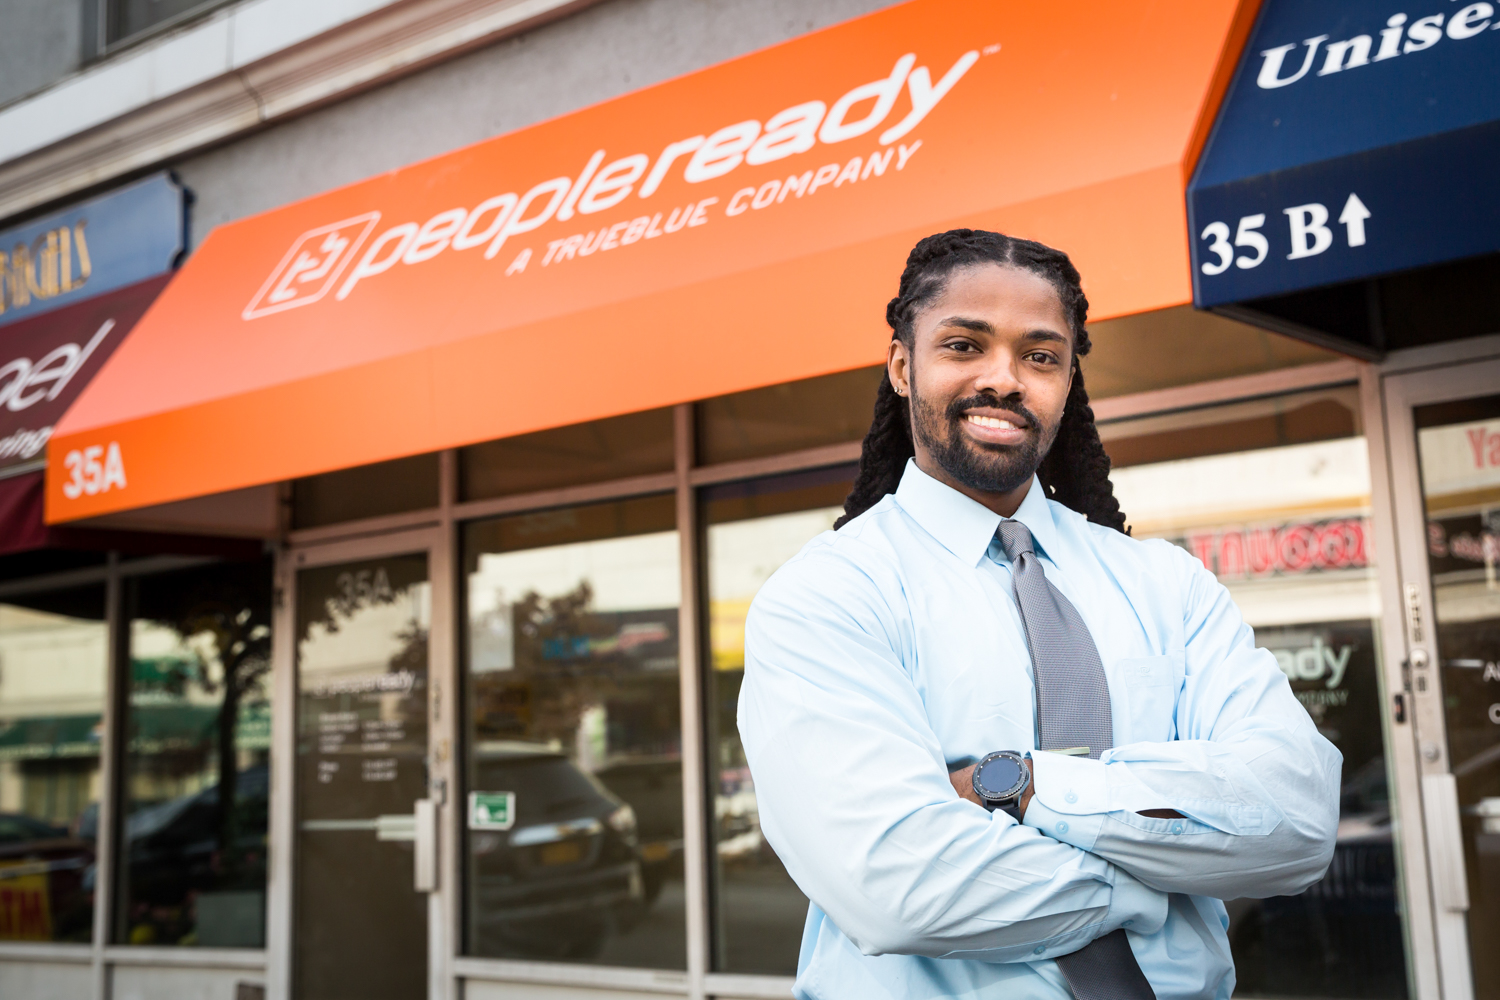 Man with arms crossed standing in front of building with orange awning